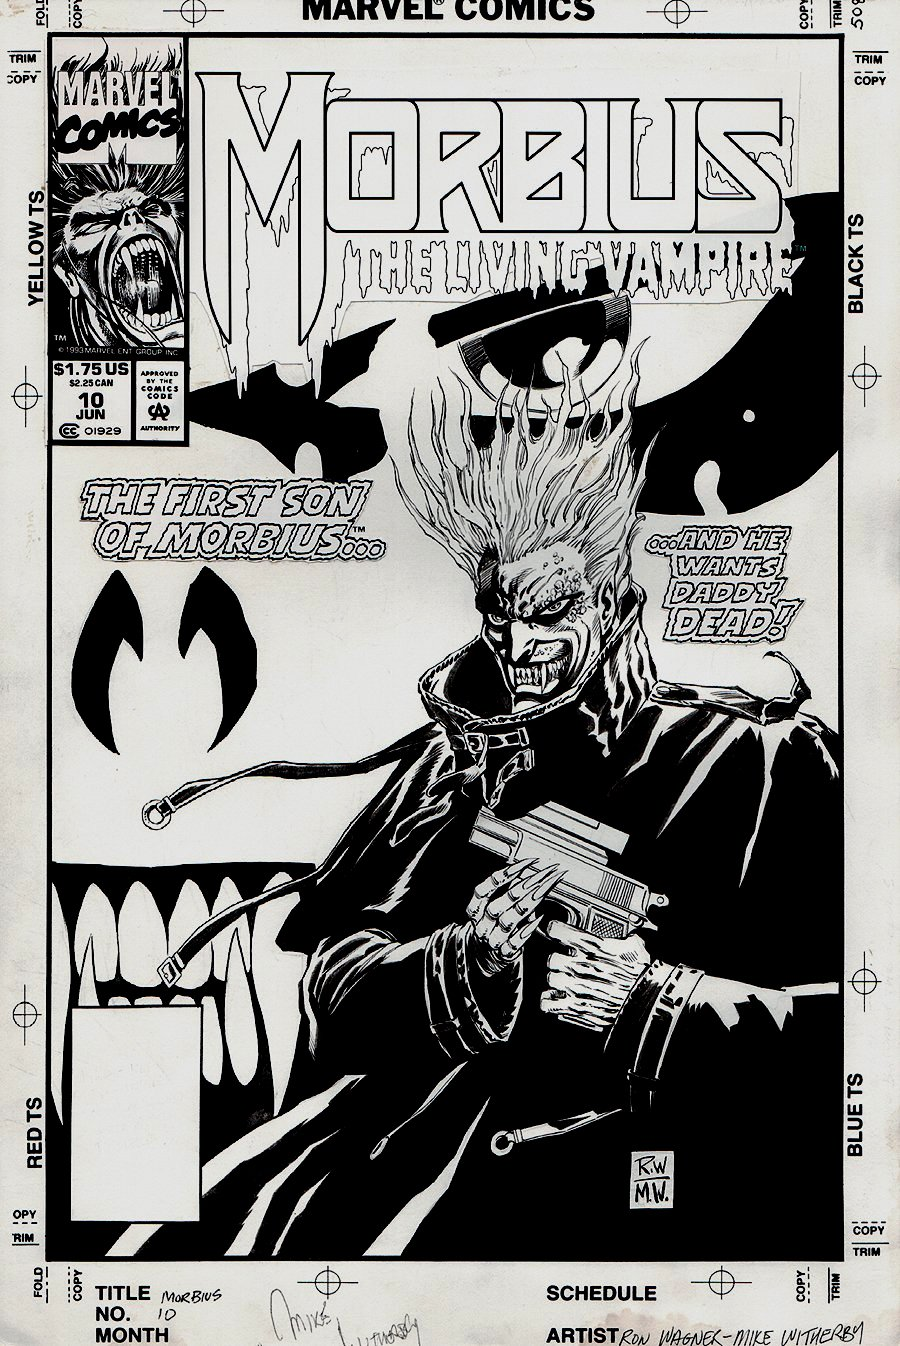 Morbius: The Living Vampire #10 Cover (1993)